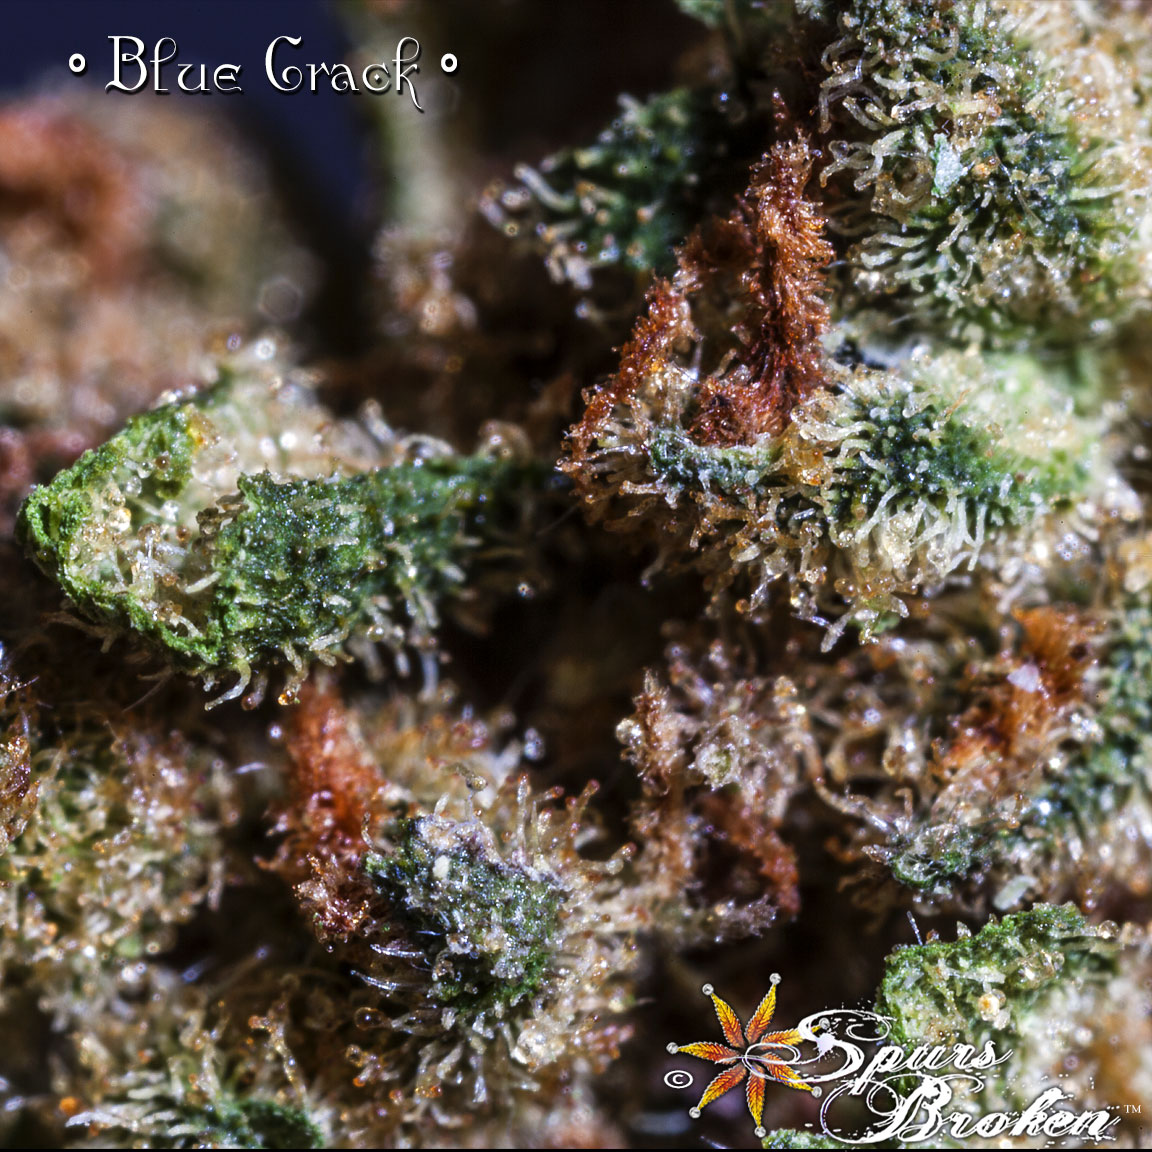 Blue Crack - Cannabis Macro Photography by Spurs Broken (Robert R. Sanders)